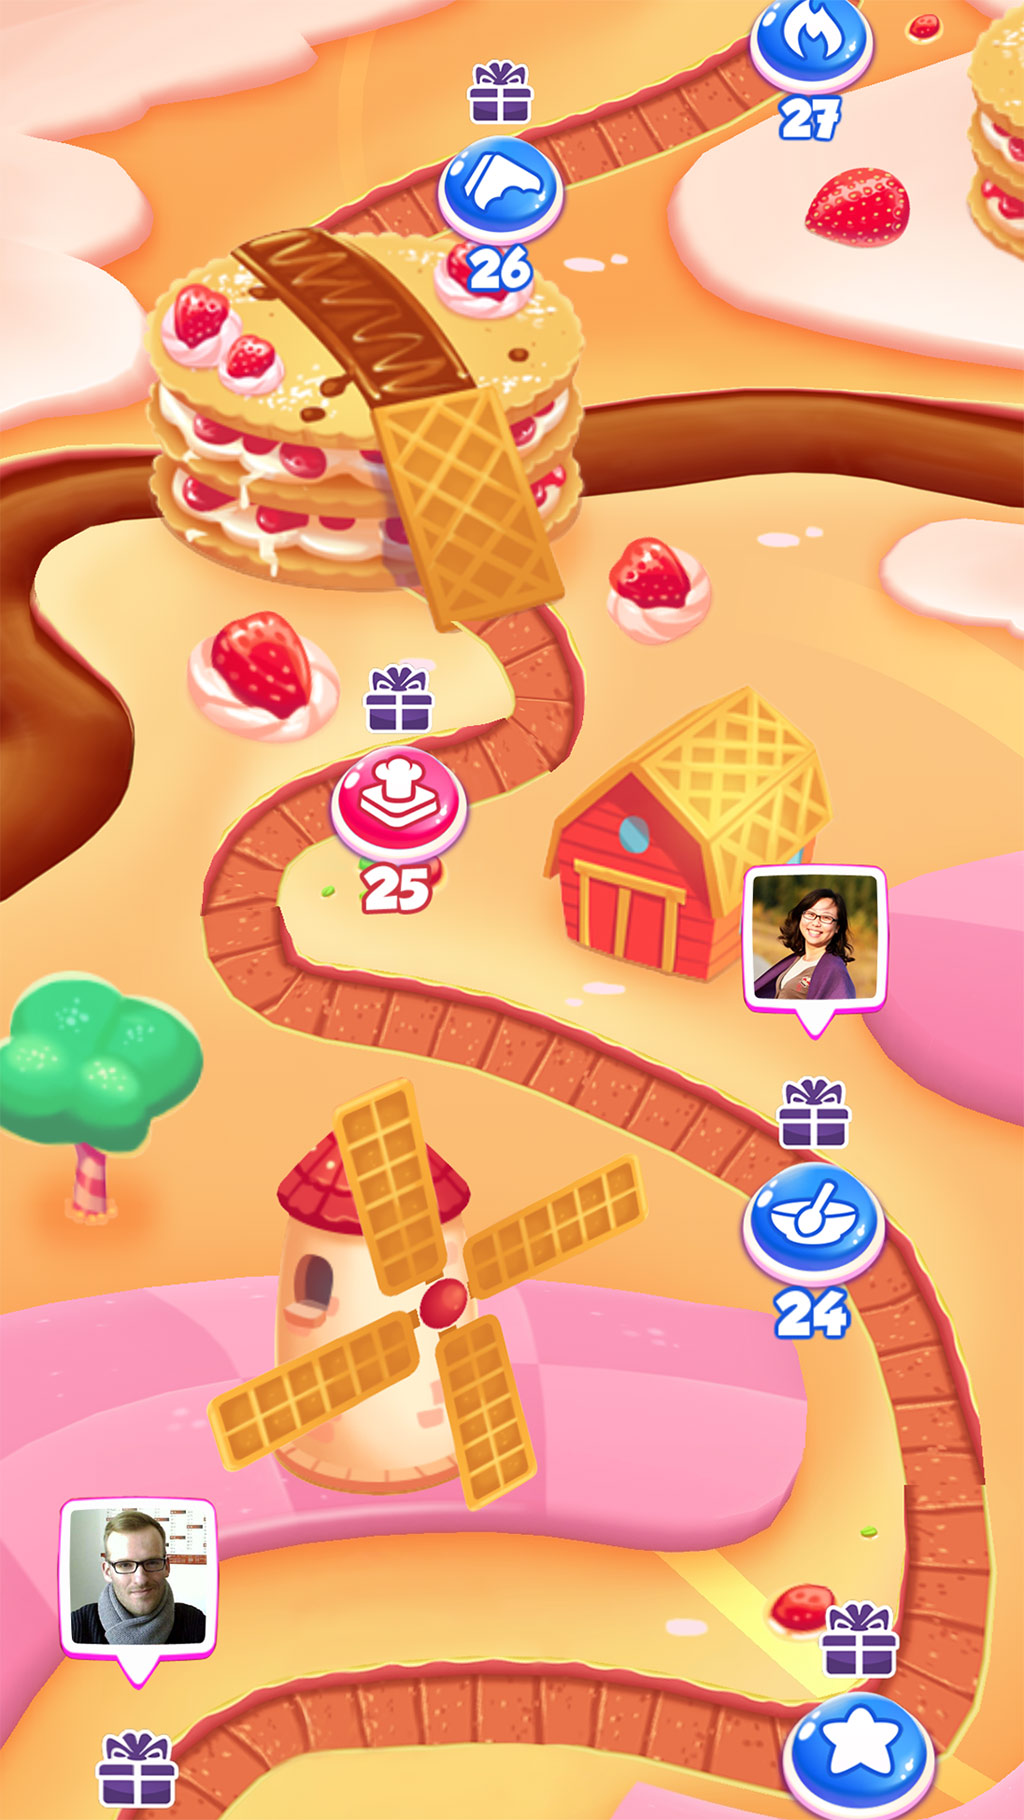 15 Games Like Pastry Paradise